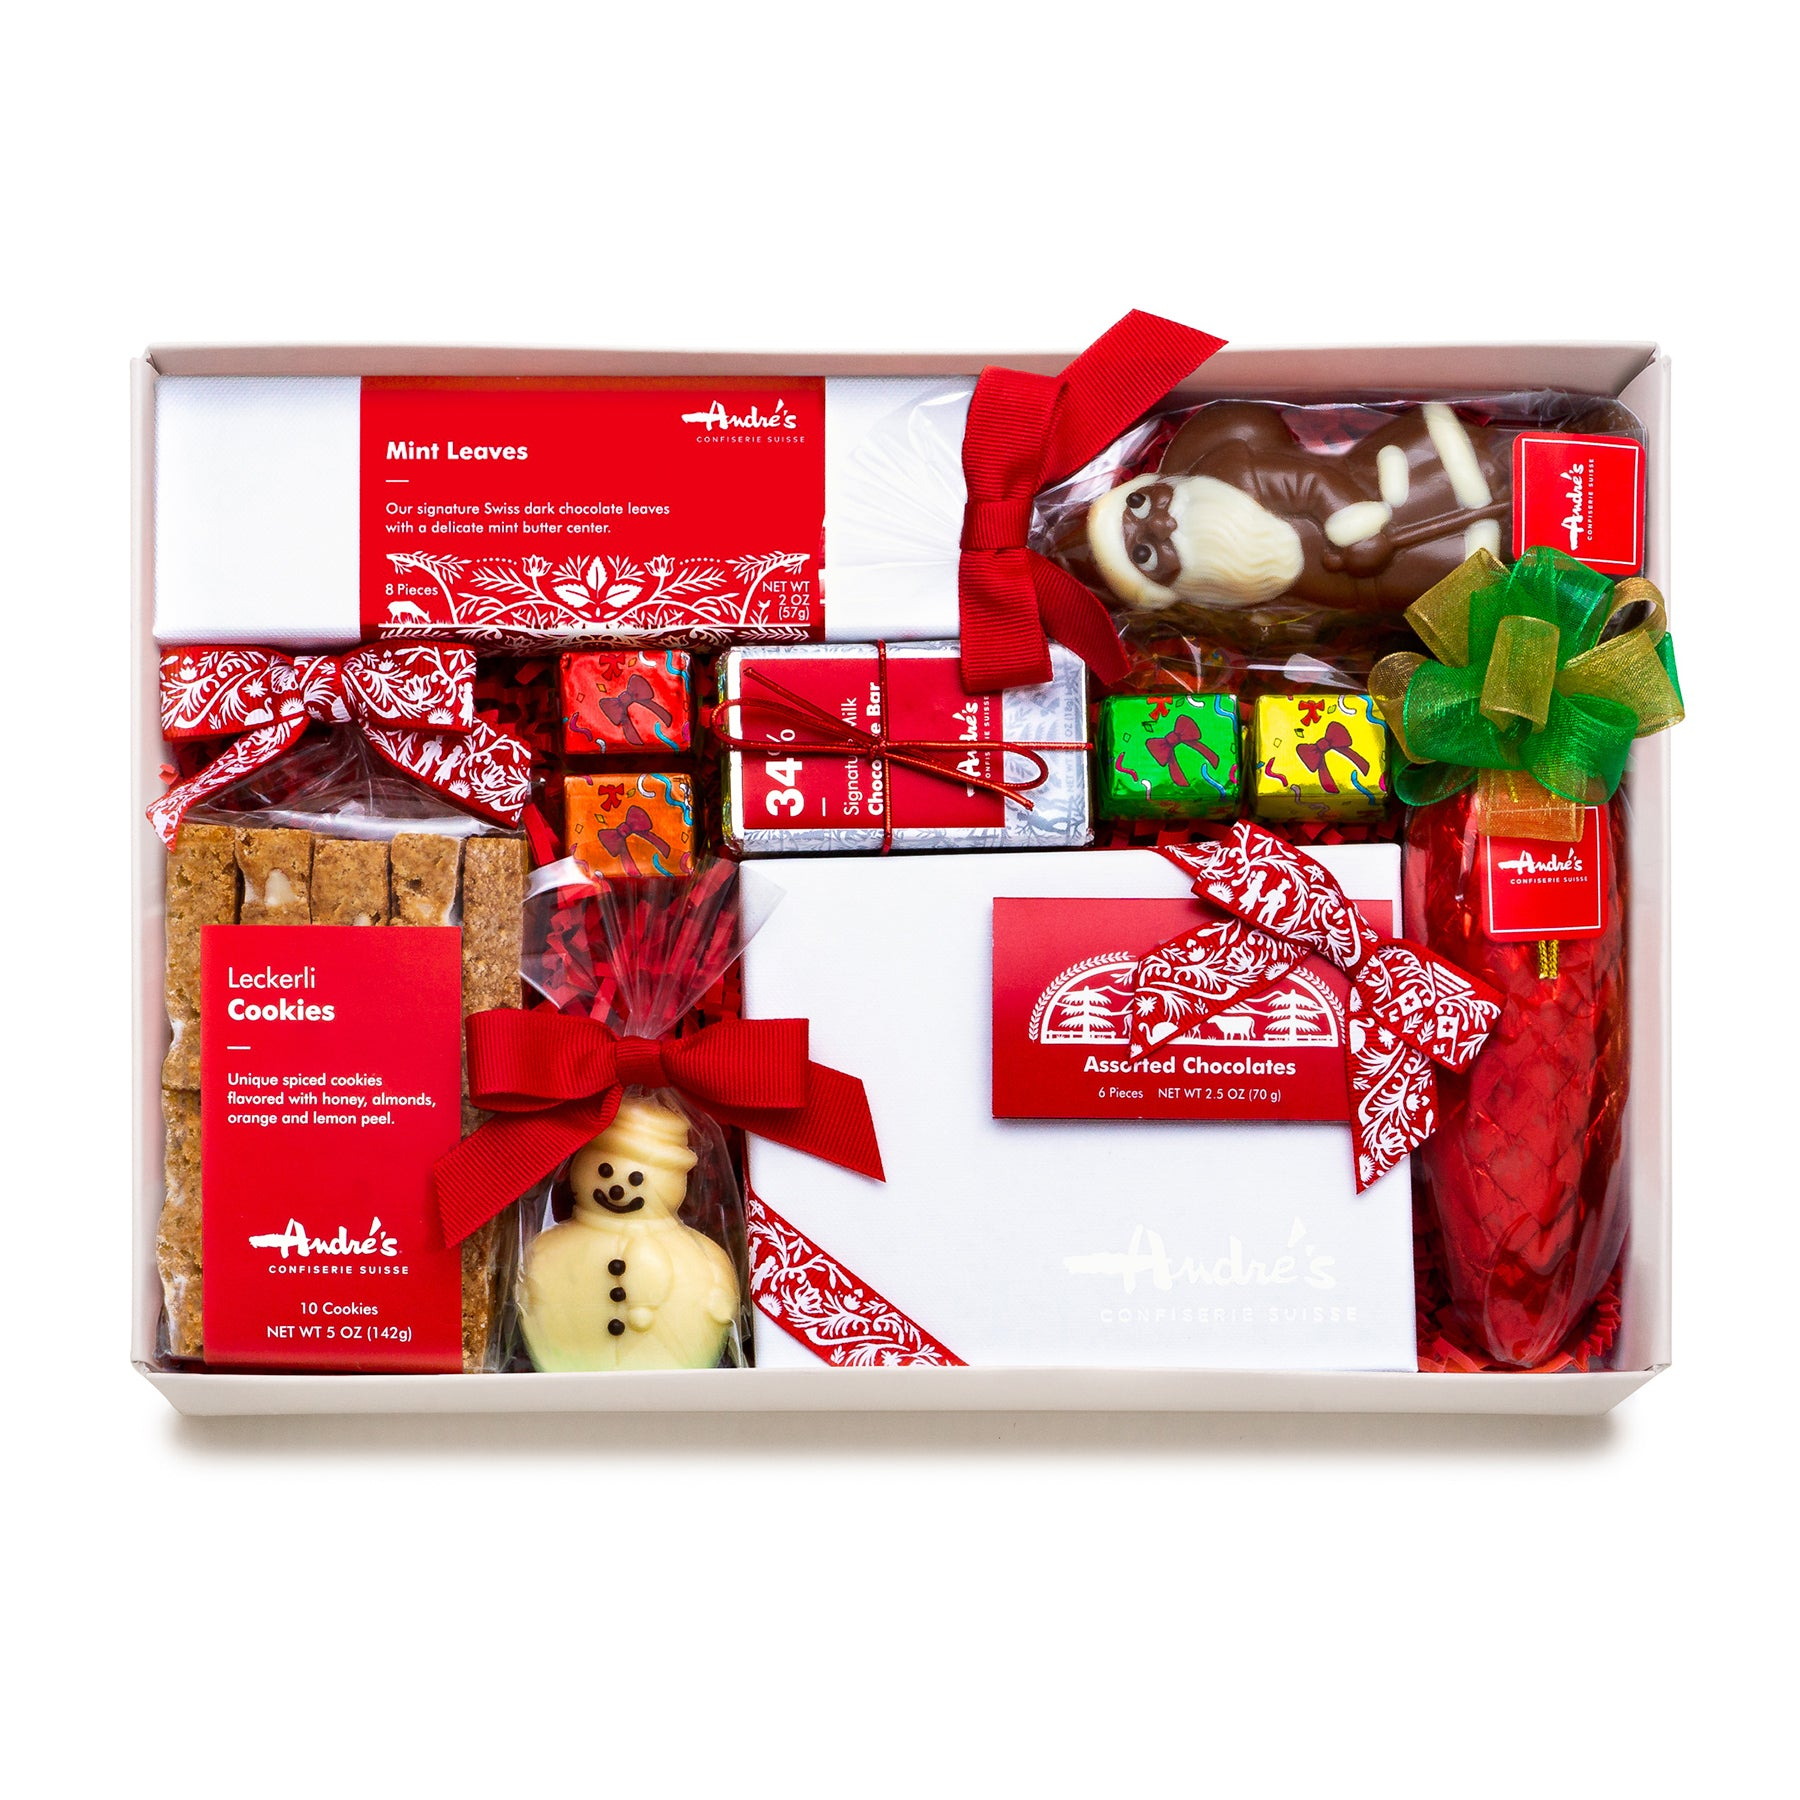 Holiday Gift Boxes (2 sizes up to $65)